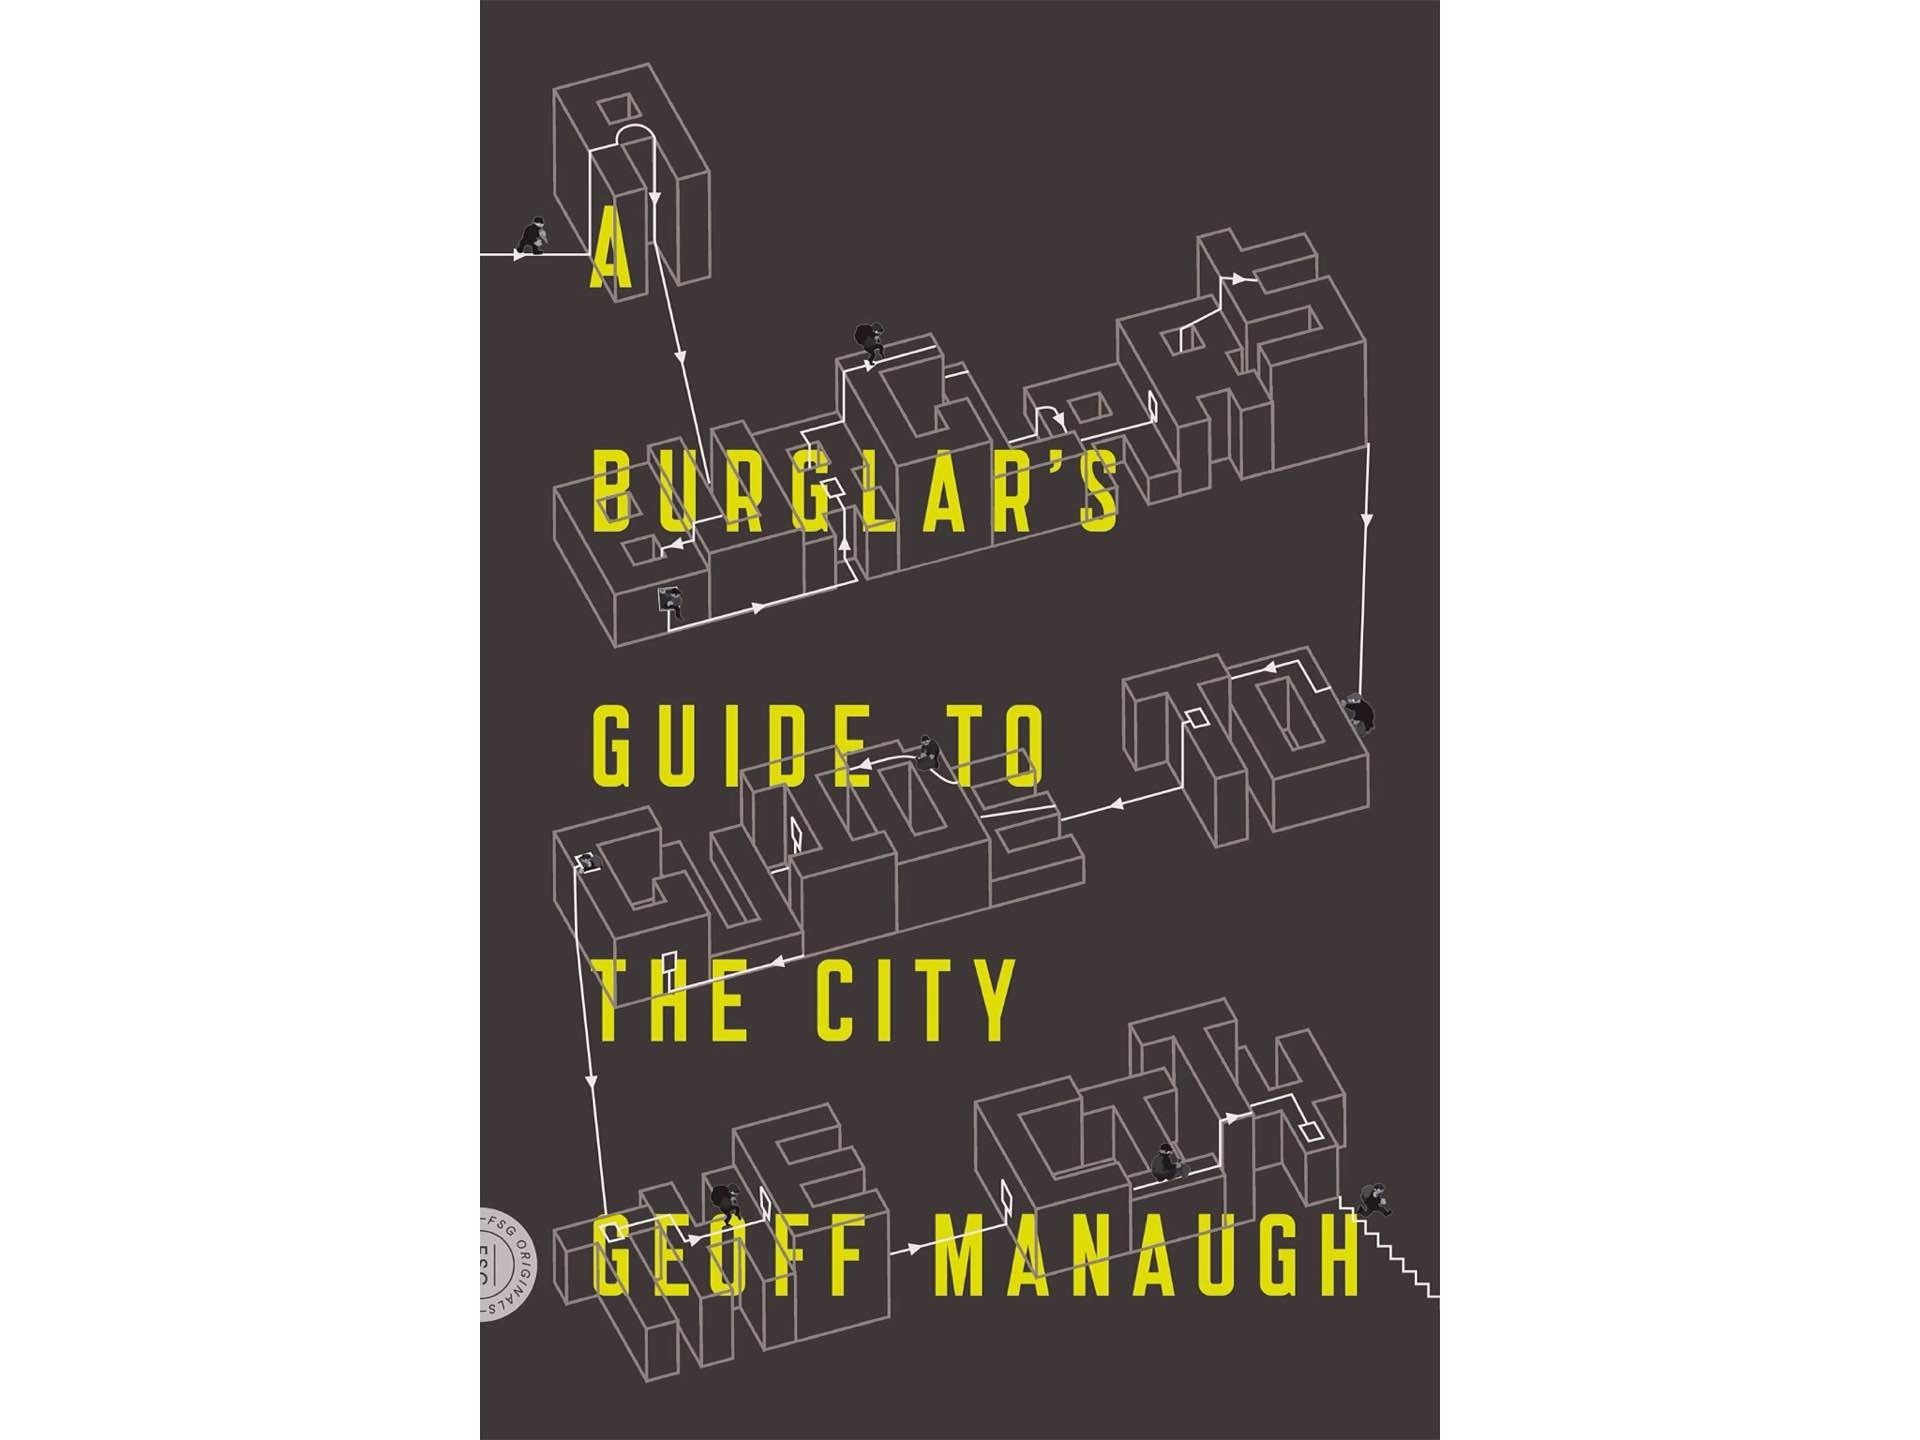 A Burglar's Guide to the City by Geoff Manaugh.